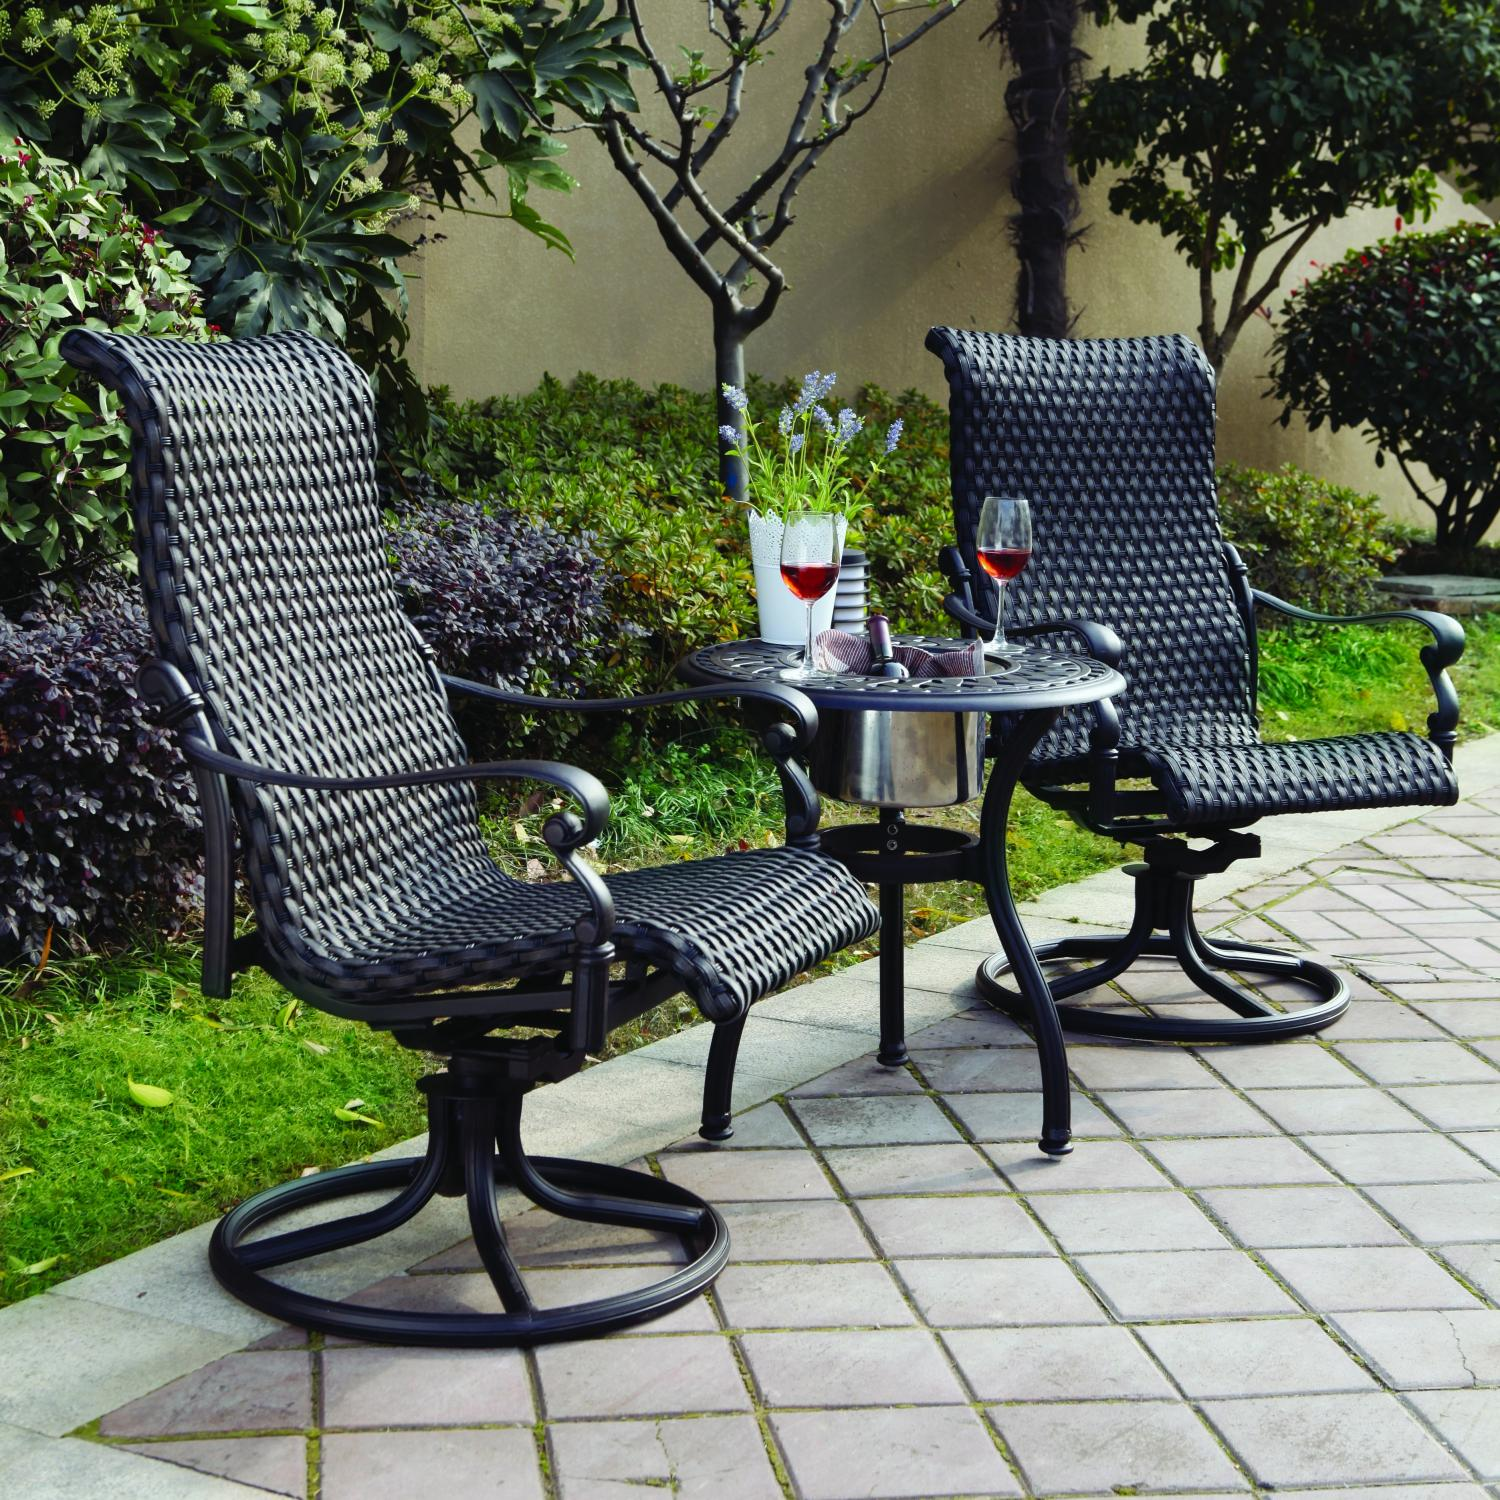 wicker patio chair set of 2 rental tables and chairs furniture aluminum rocker swivel